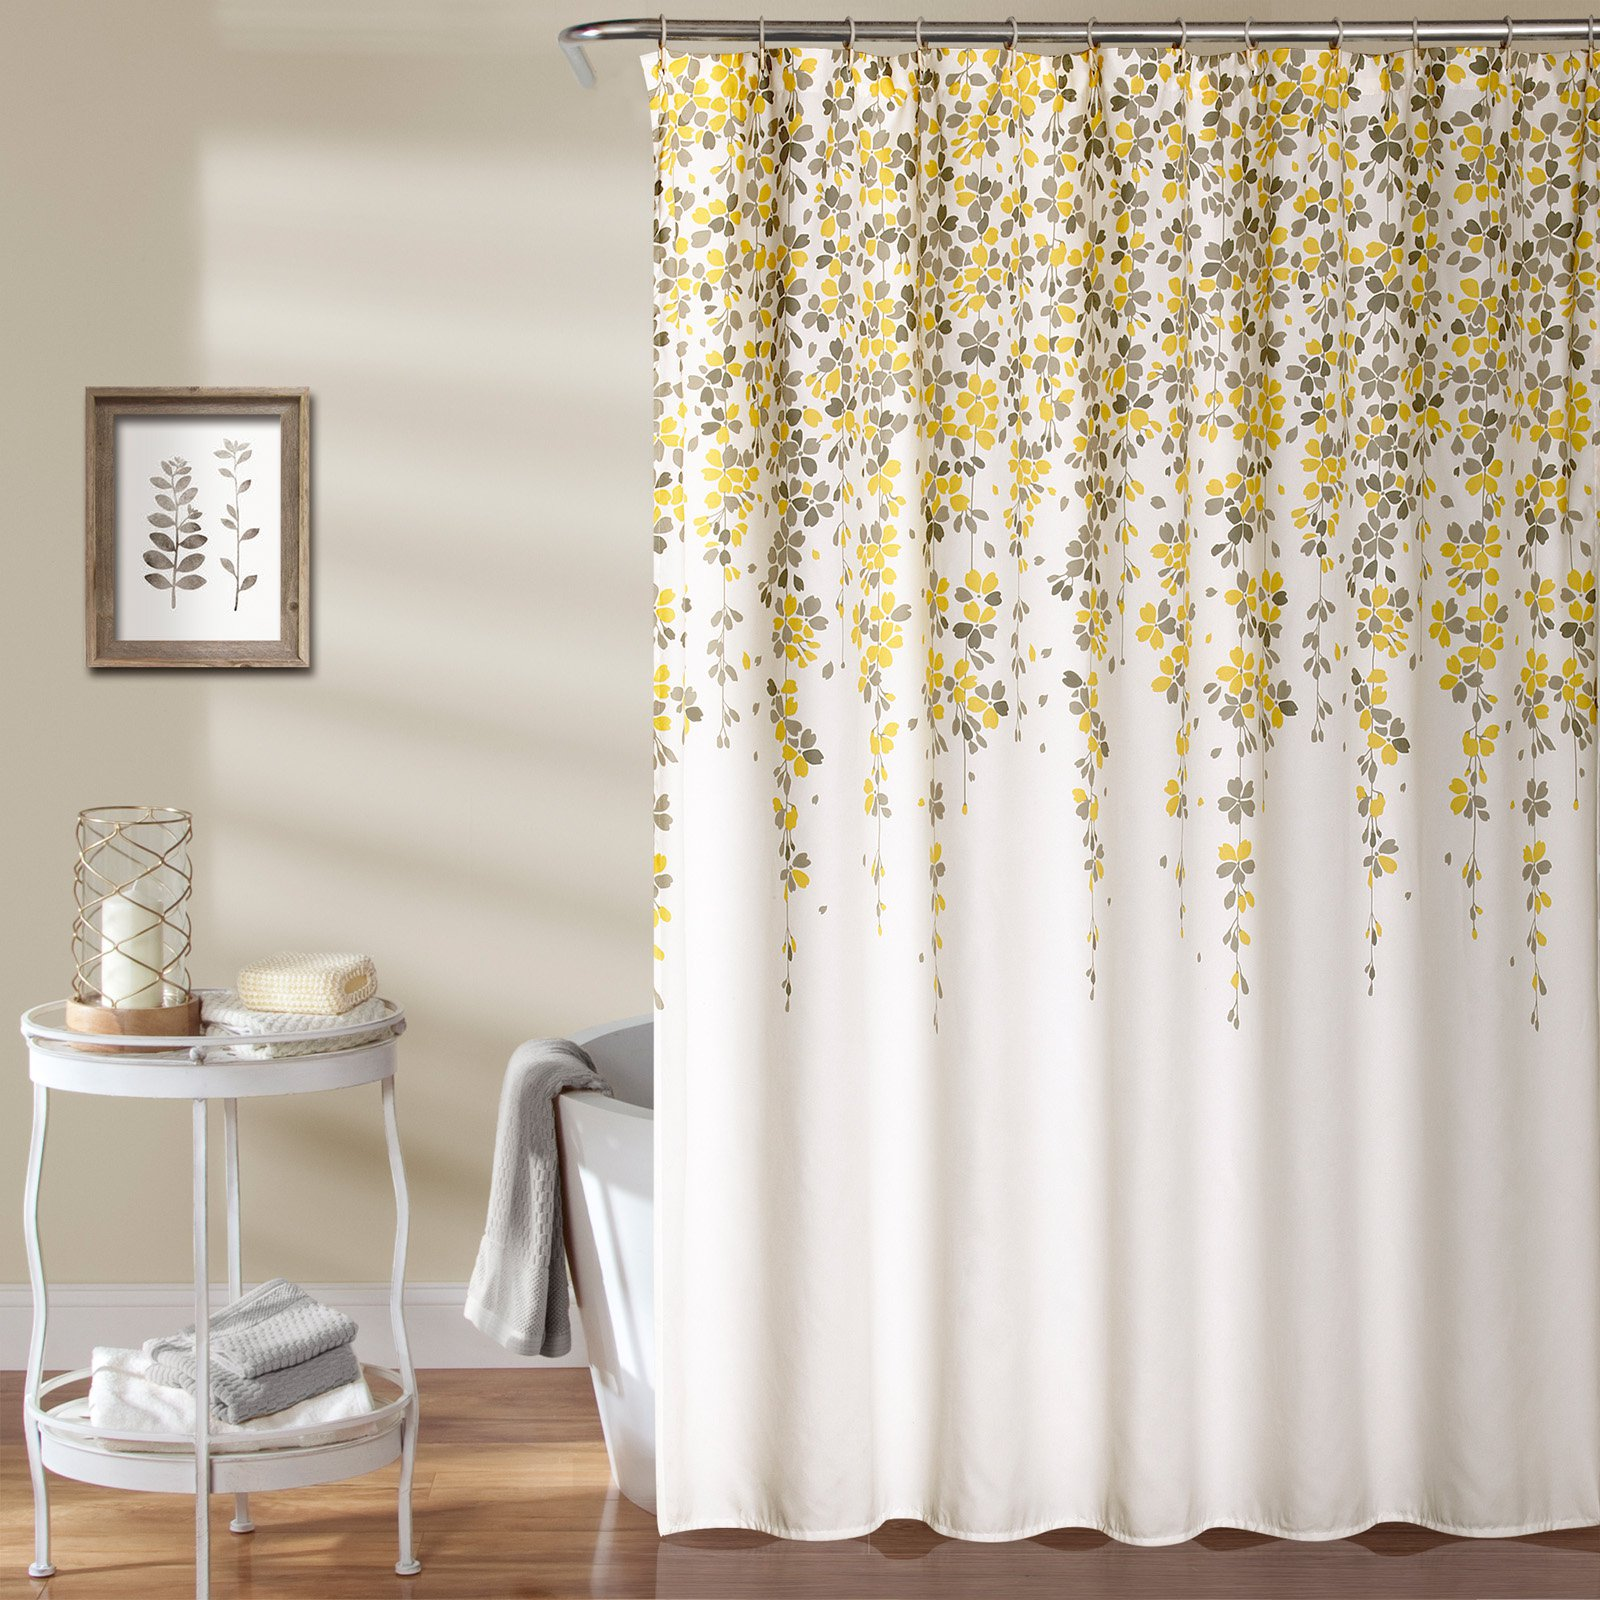 Weeping Flower Shower Curtain Yellow/Gray